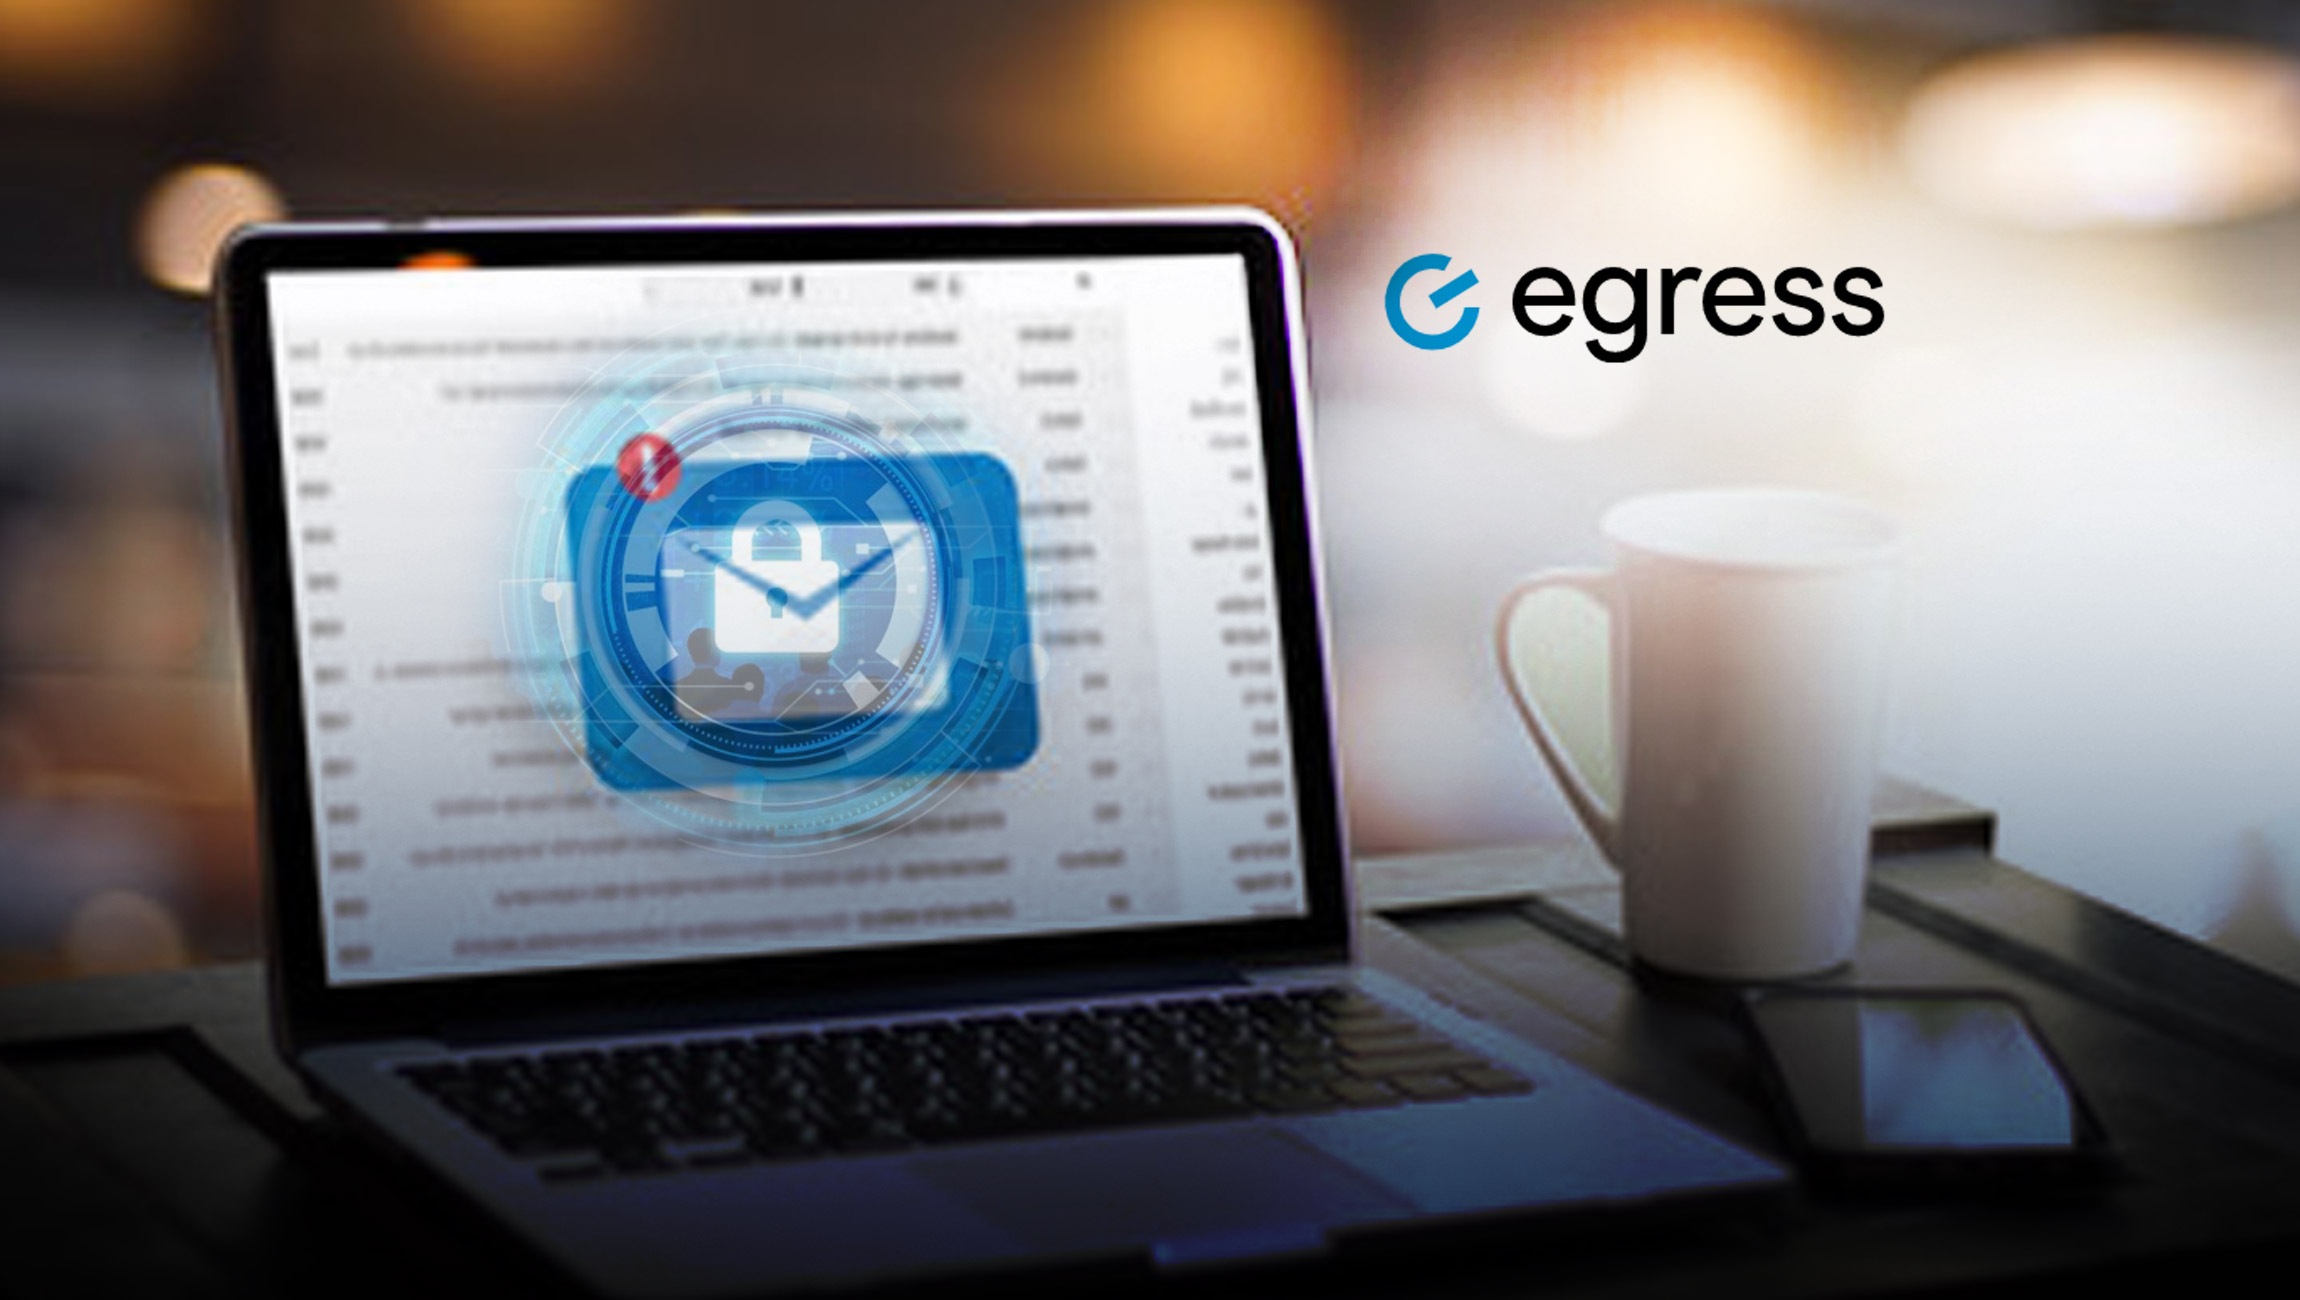 95% of IT Leaders Say That Client and Company Data Is At Risk On Email, Research By Egress Reveals